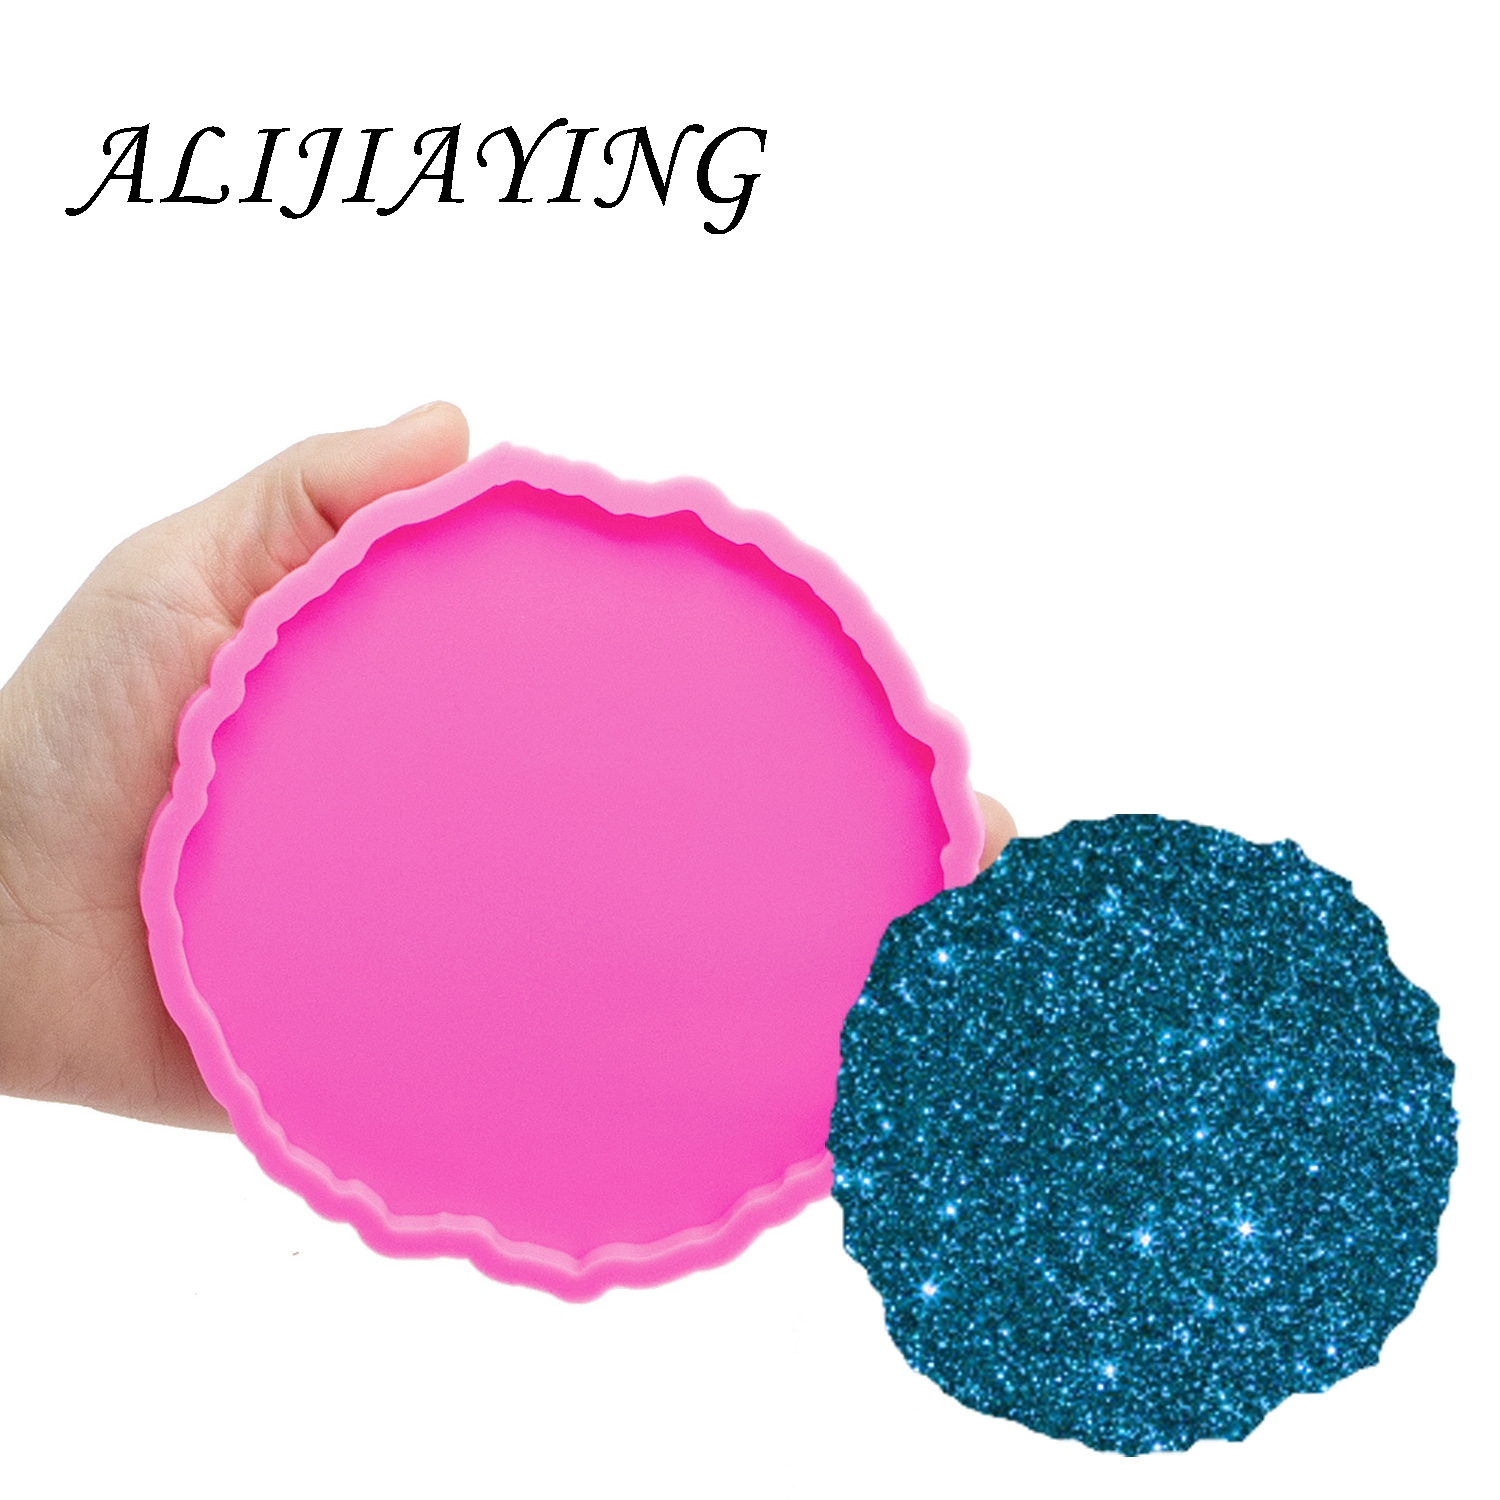 4.1/4.9 Inches Circle Molds Flower Mould For Epoxy Craft  DIY Round Silicone Geode Coaster Agate Resin Mold DY0279